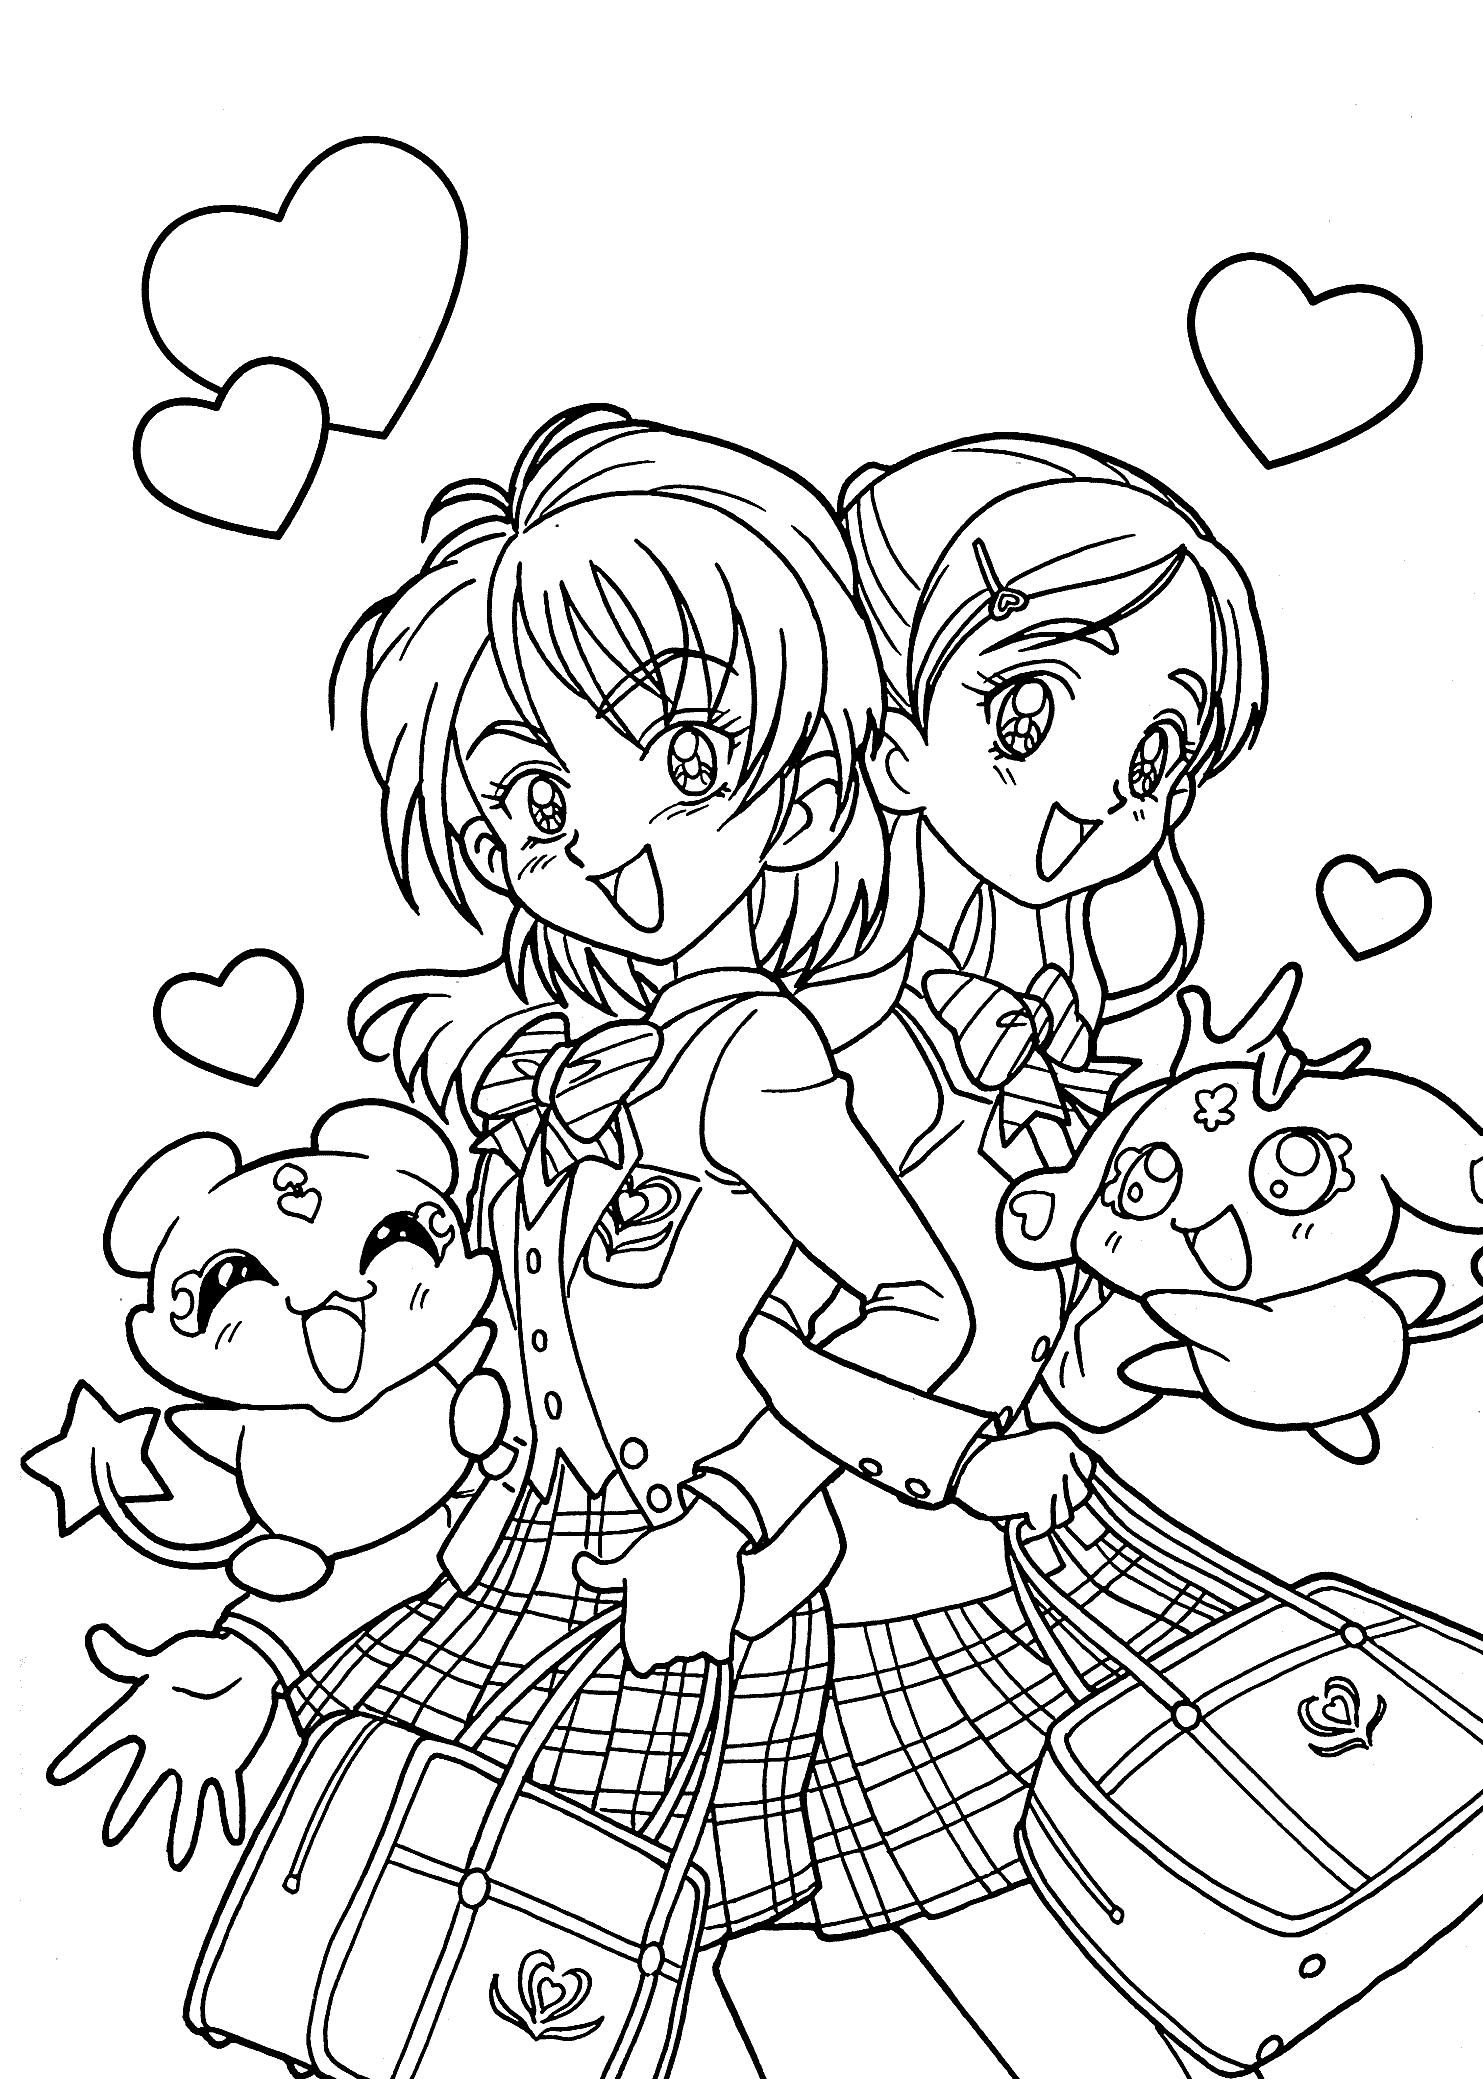 16 Coloring Page Schoolgirl Cute Coloring Pages Manga Coloring Book Coloring Pages [ 2079 x 1483 Pixel ]